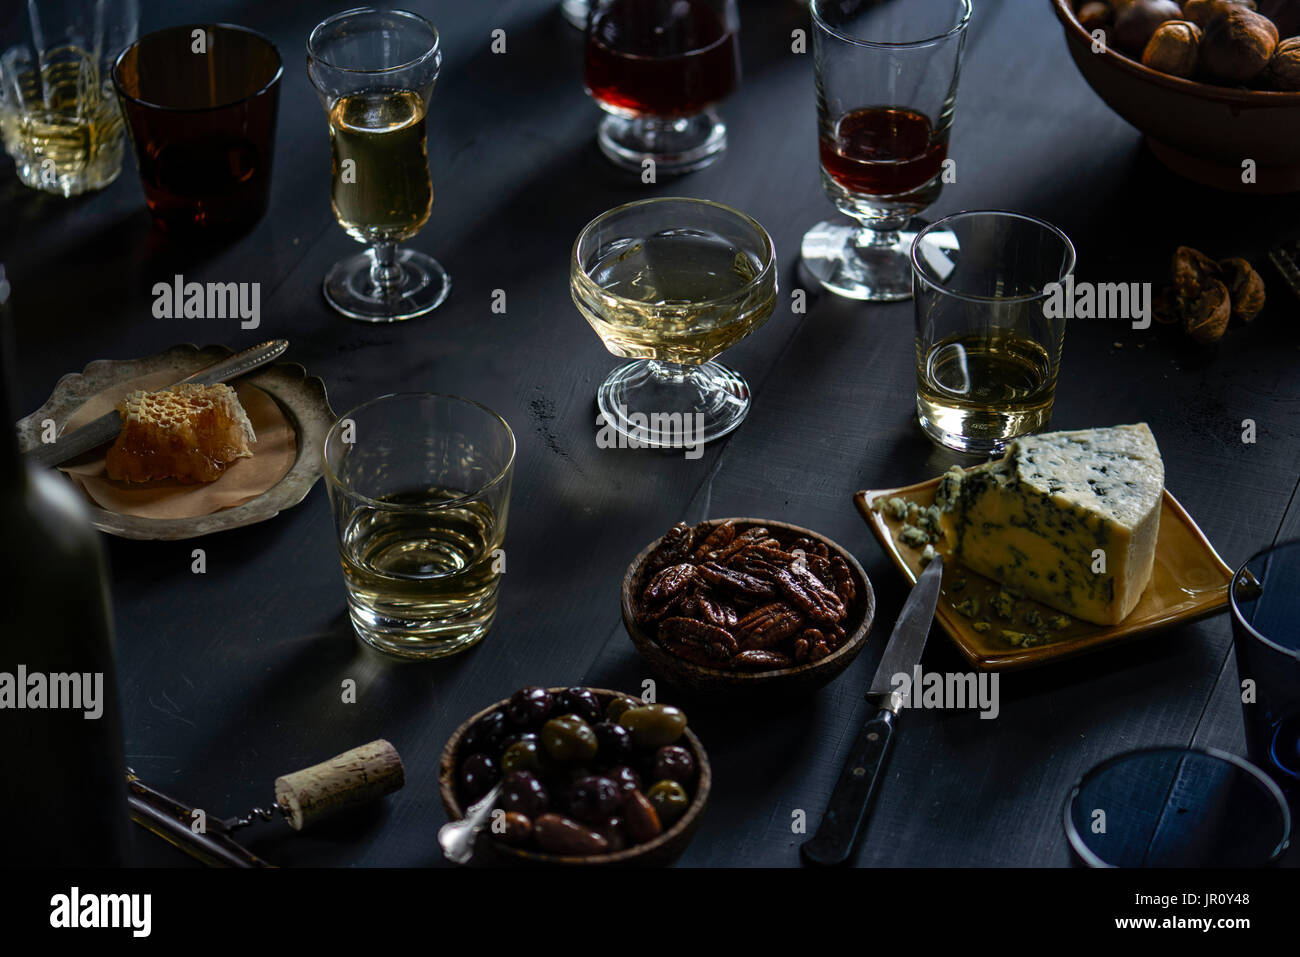 party setup, dinner, party - Stock Image